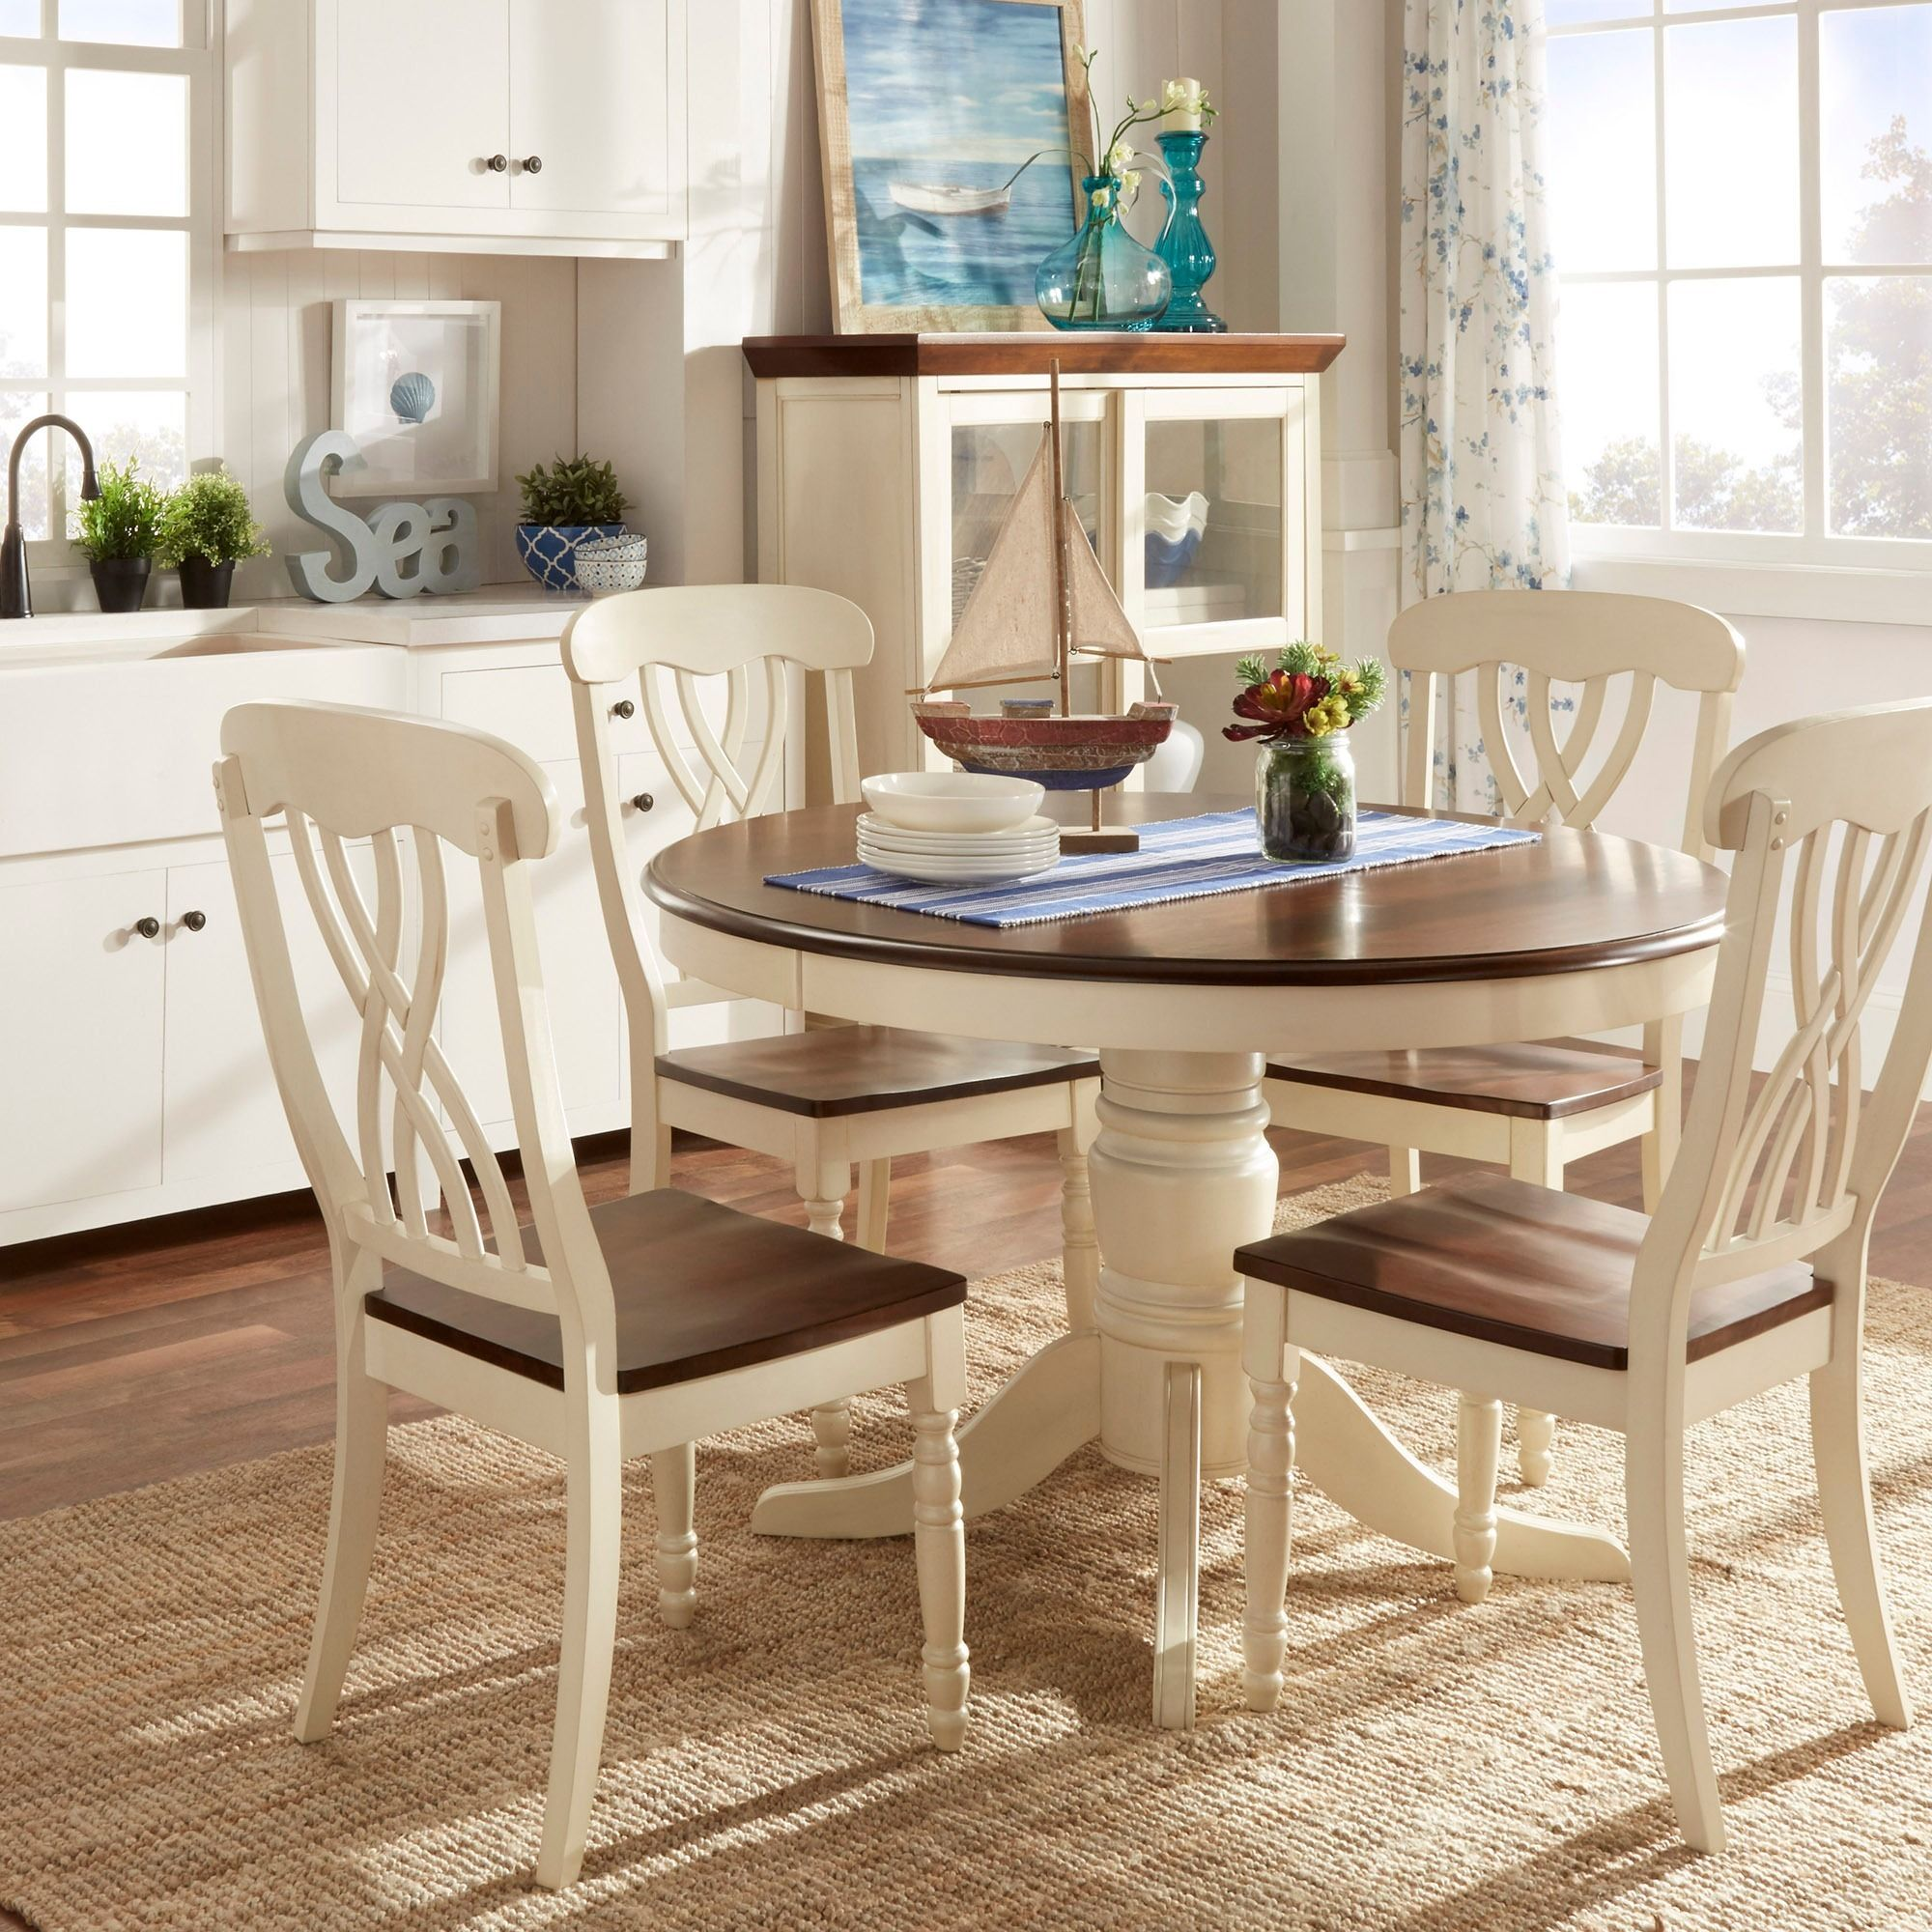 Dining Room Sets: The Design Of This 5-piece Dining Set From Mackenzie